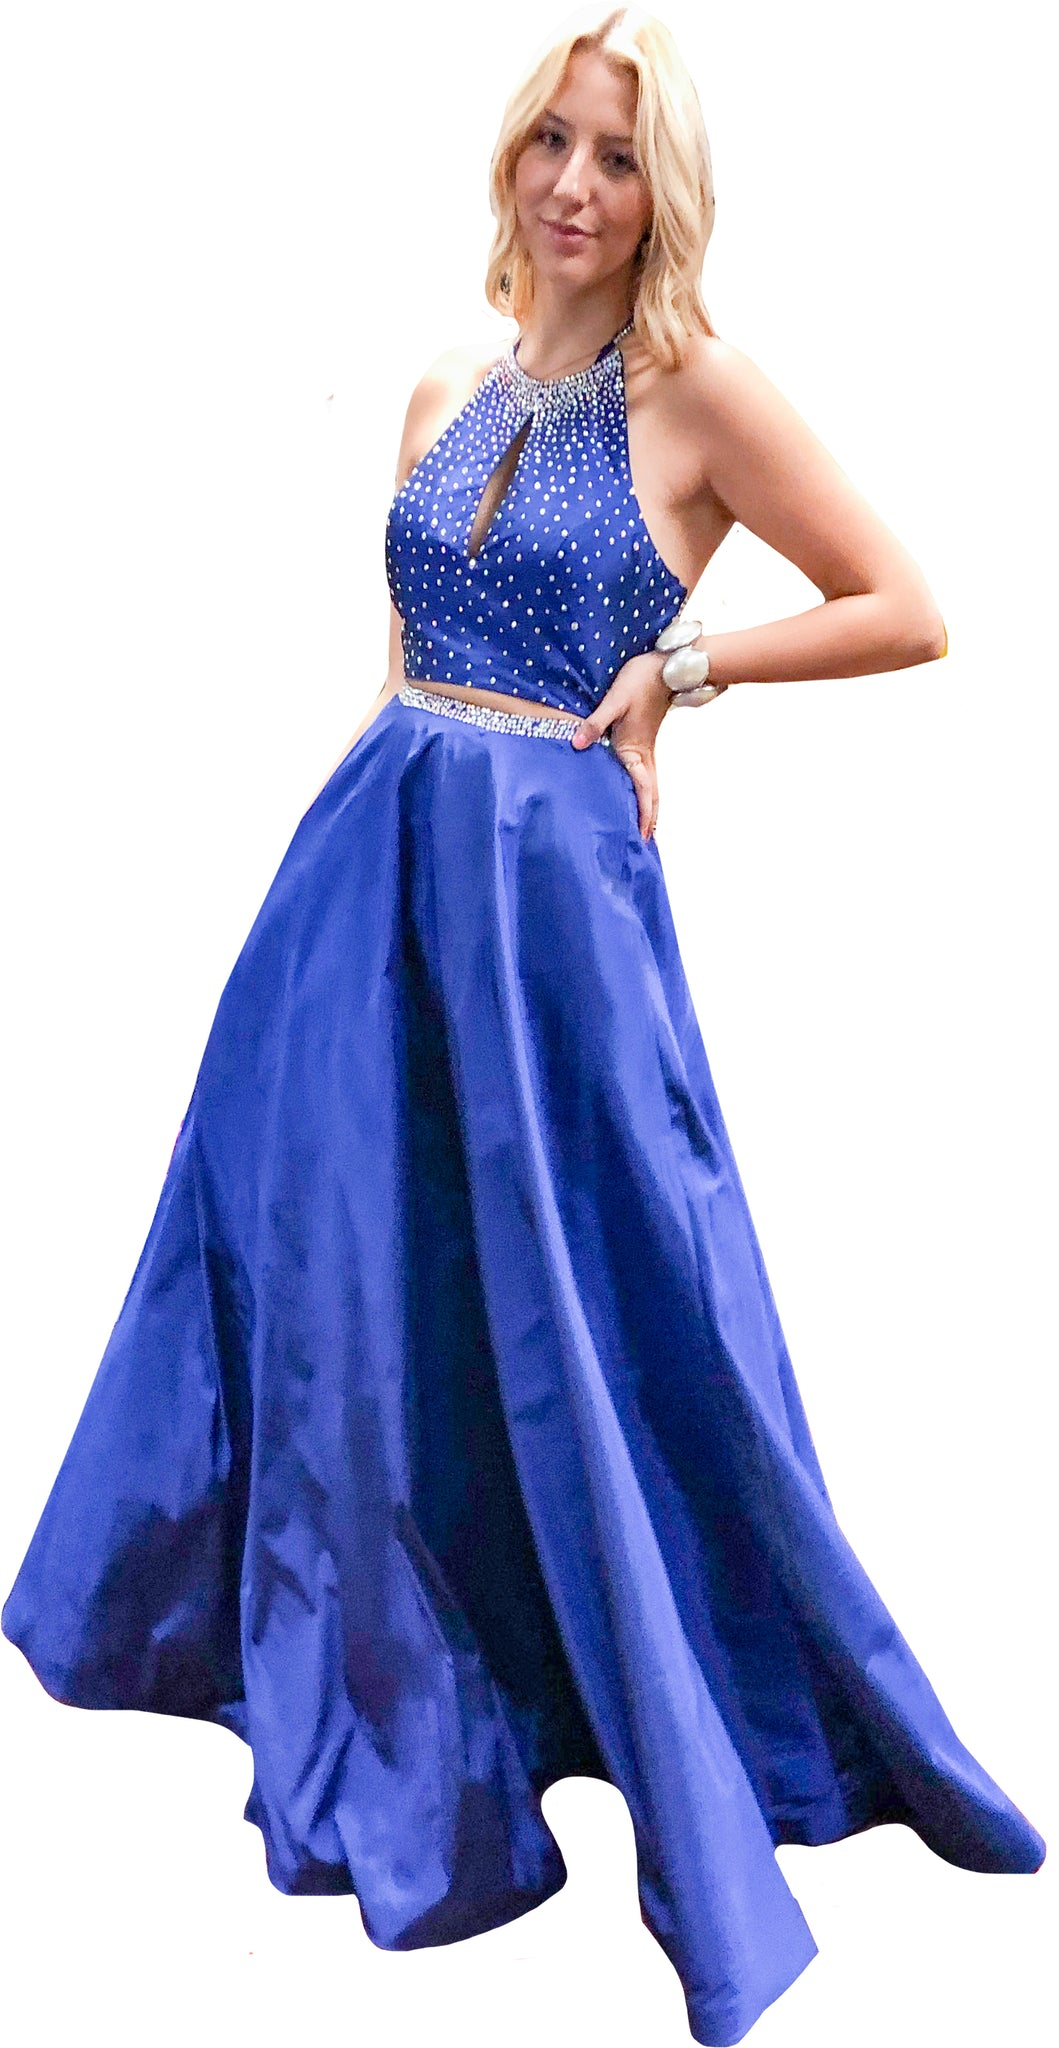 2-Piece Cobalt Satin Organza Ball Skirt & Cropped Halter Top